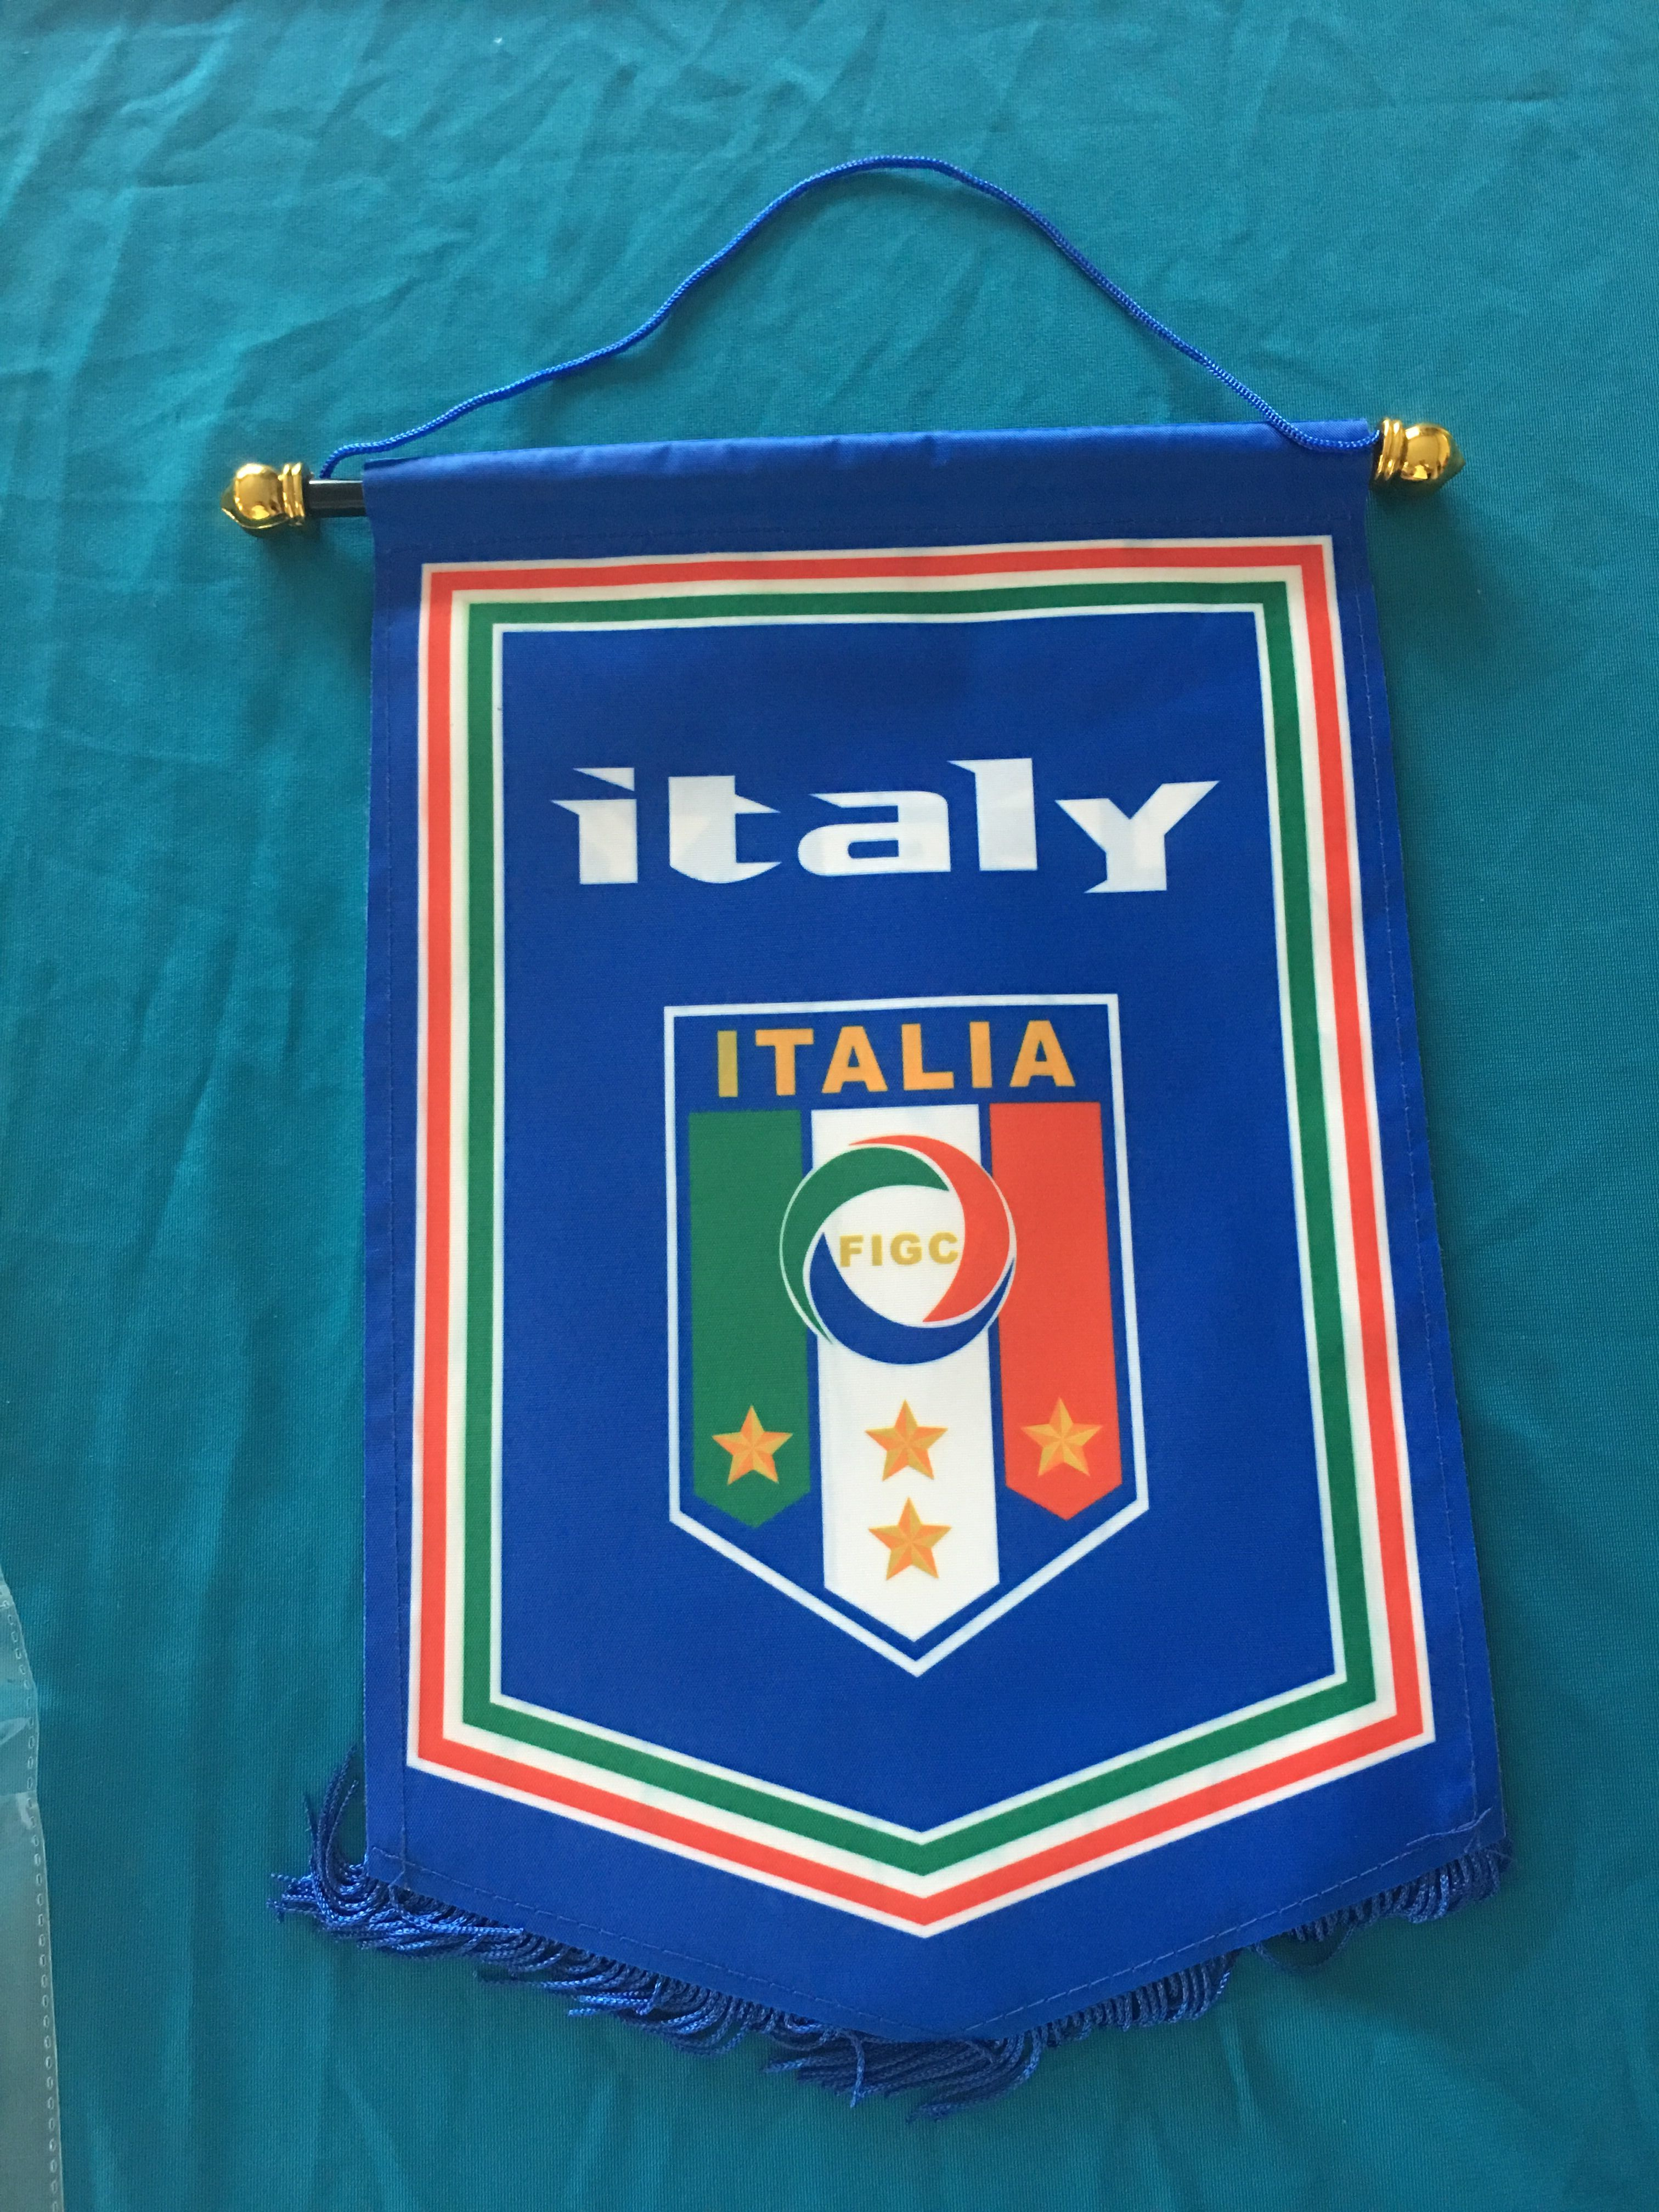 Italy Hang Flag Decor Football Fans Souvenir